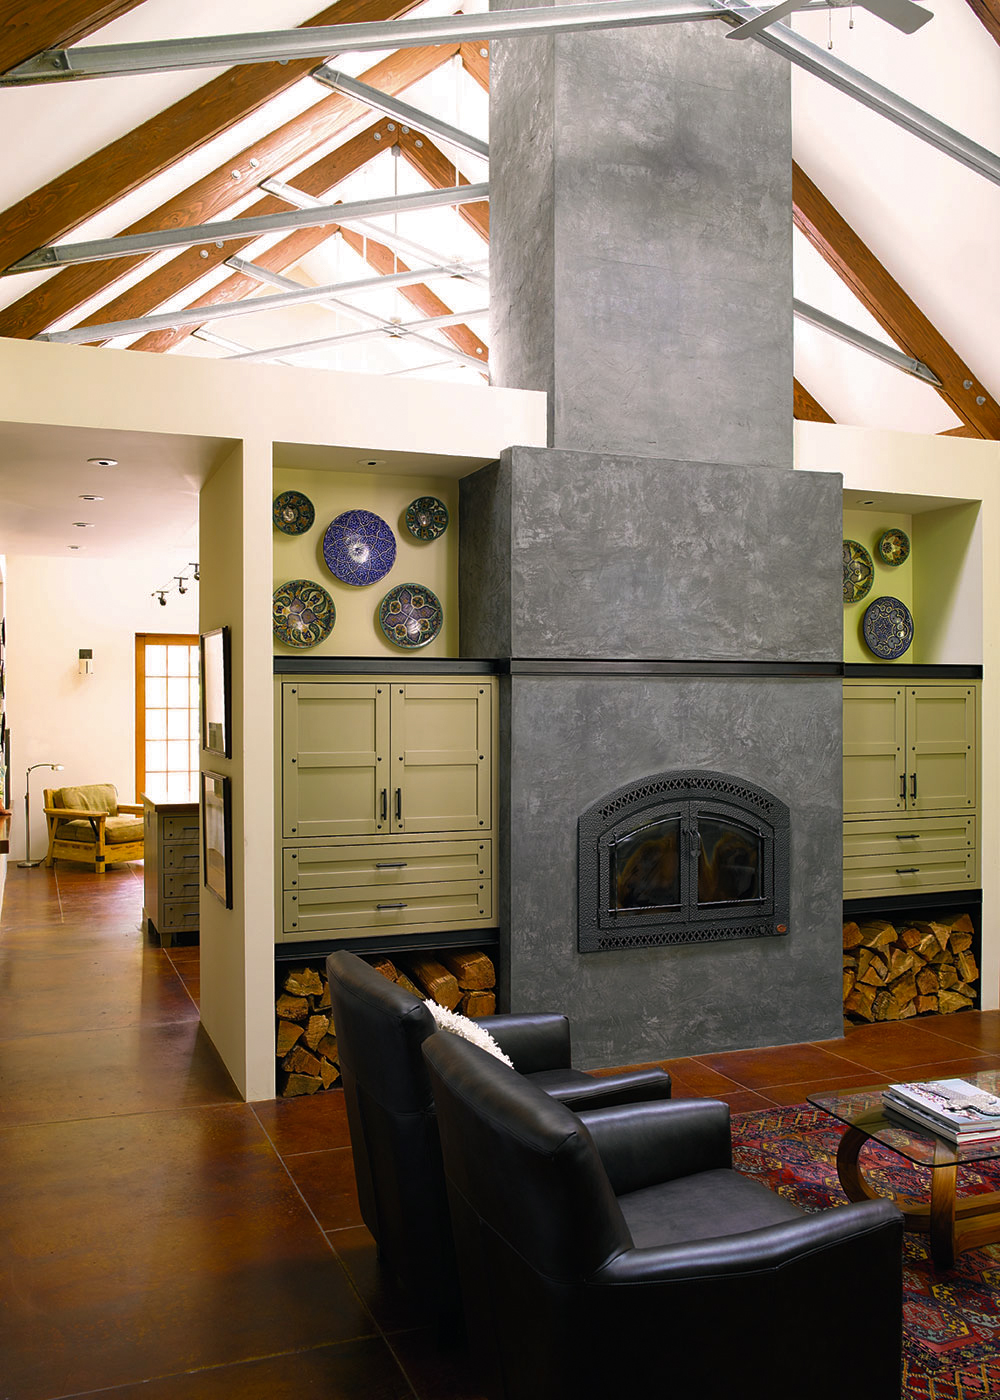 Barn house modern interior family room exposed trusses steel fireplace